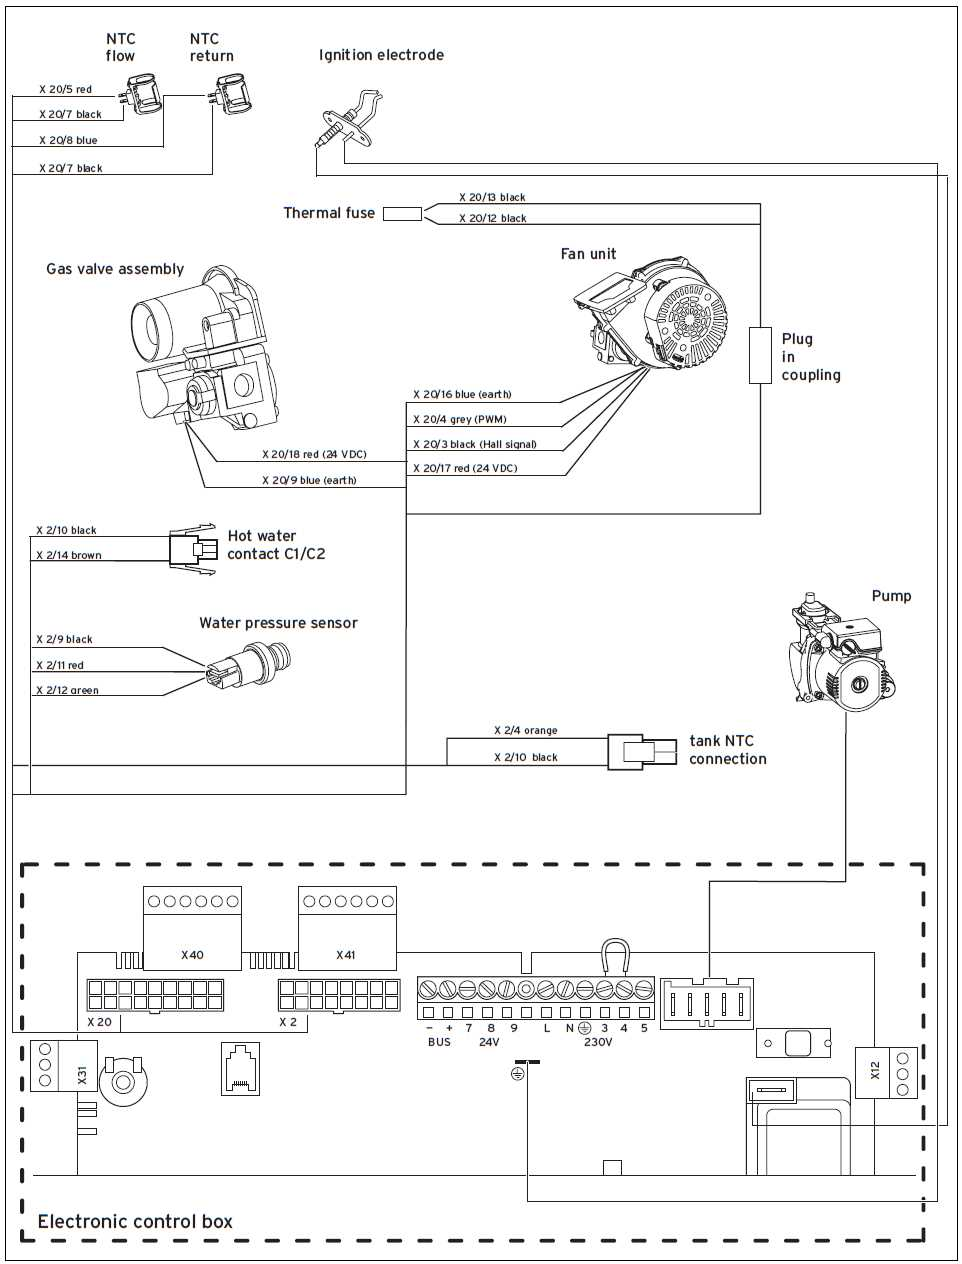 wiring3 vaillant ecotec plus 430 wiring diagram efcaviation com 2013 GM 2.4 Ecotec Engine at n-0.co